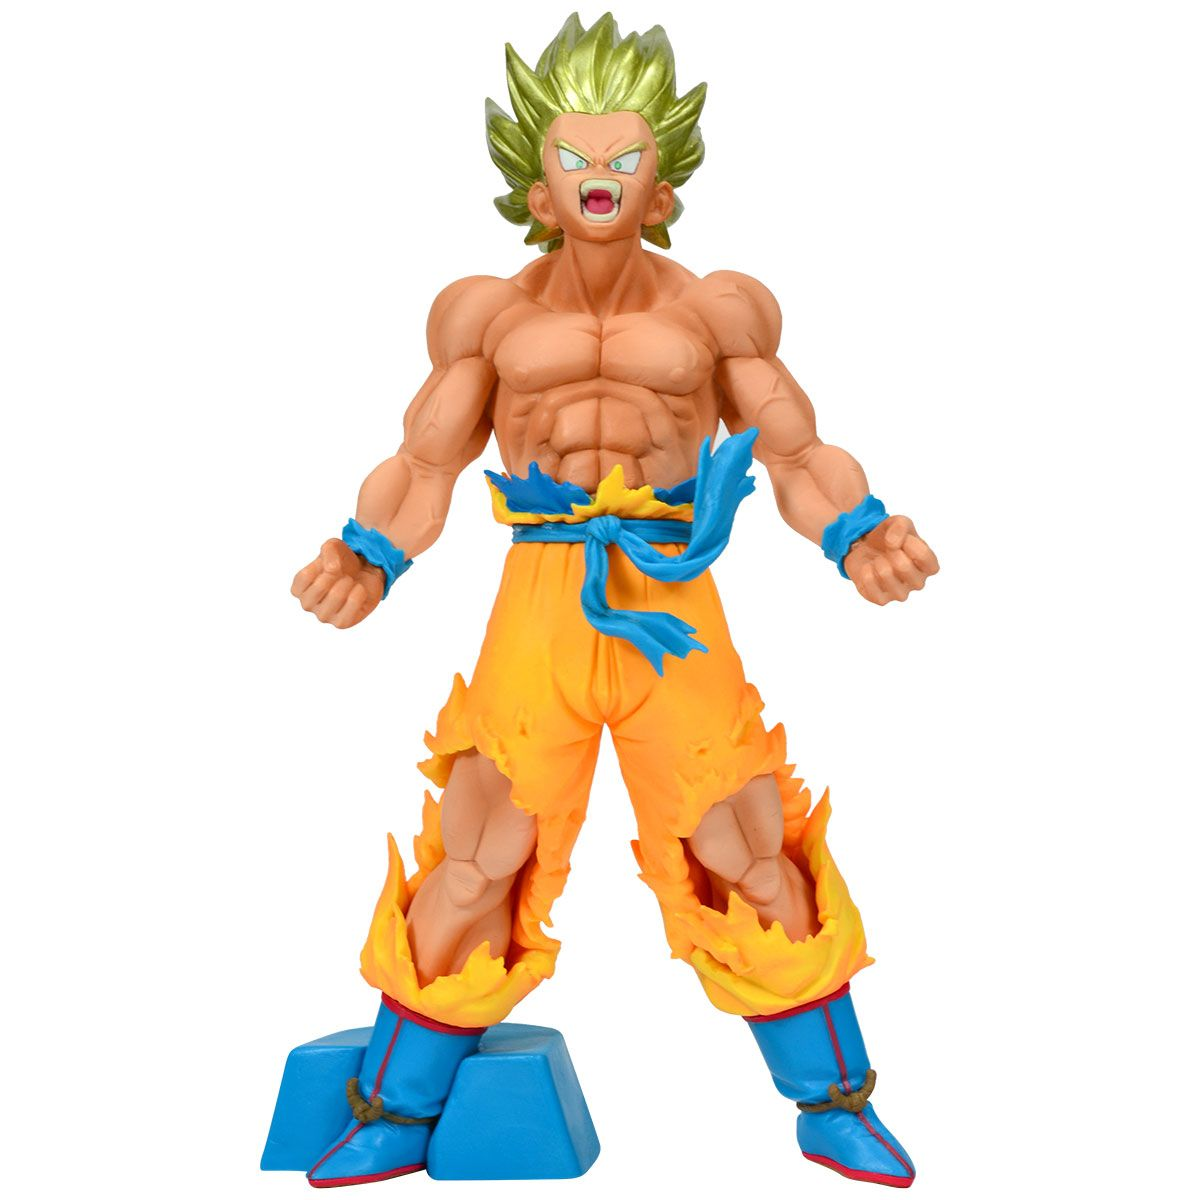 Estátua Son Goku (Blood of Saiyajins): Dragon Ball Z - Banpresto - CG